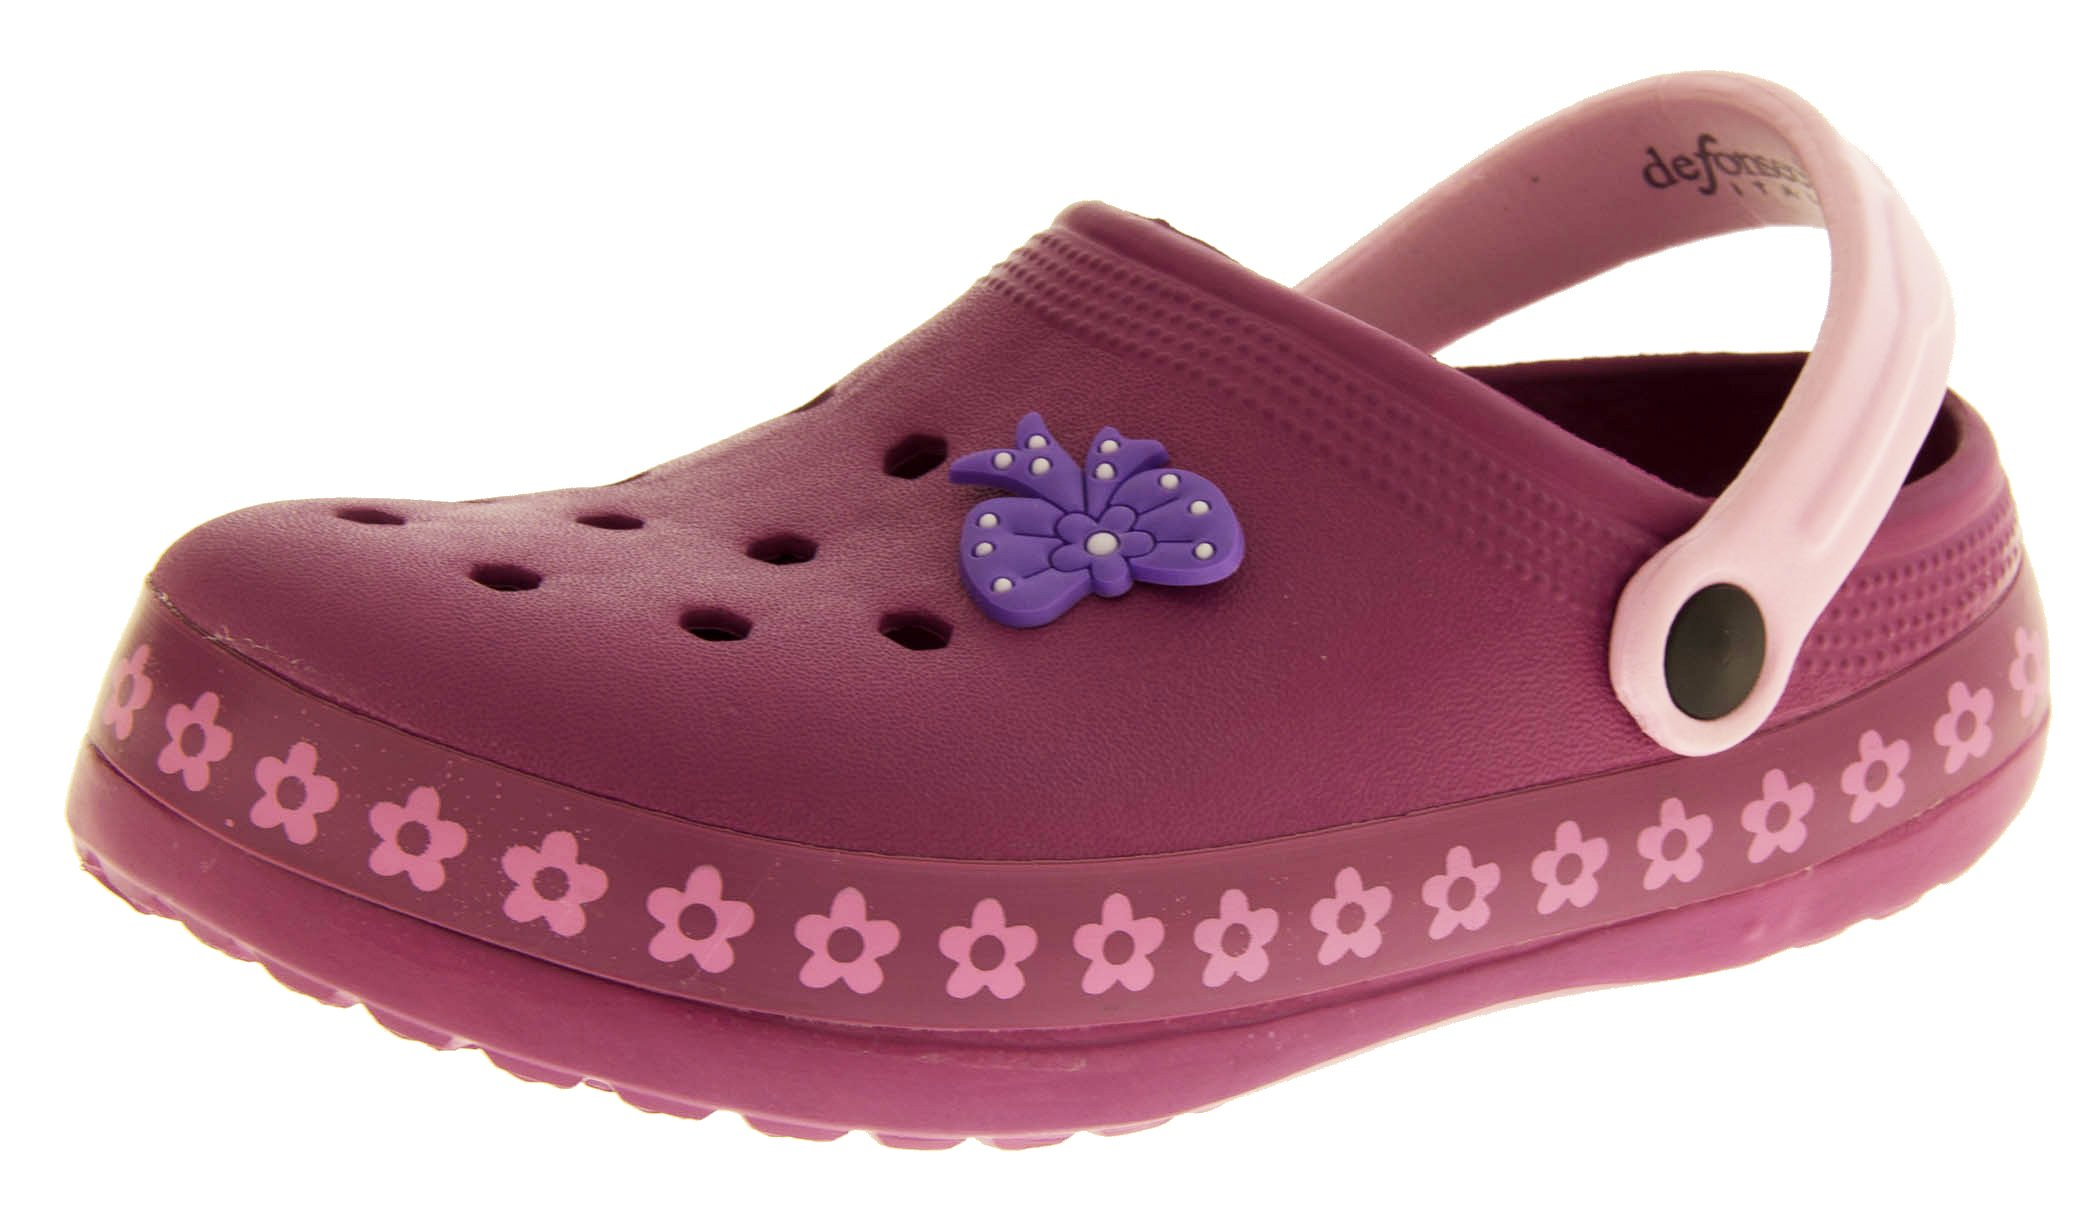 De Fonseca Girls Sabetta Plum Purple Beach Clog Mule Sandals US 3